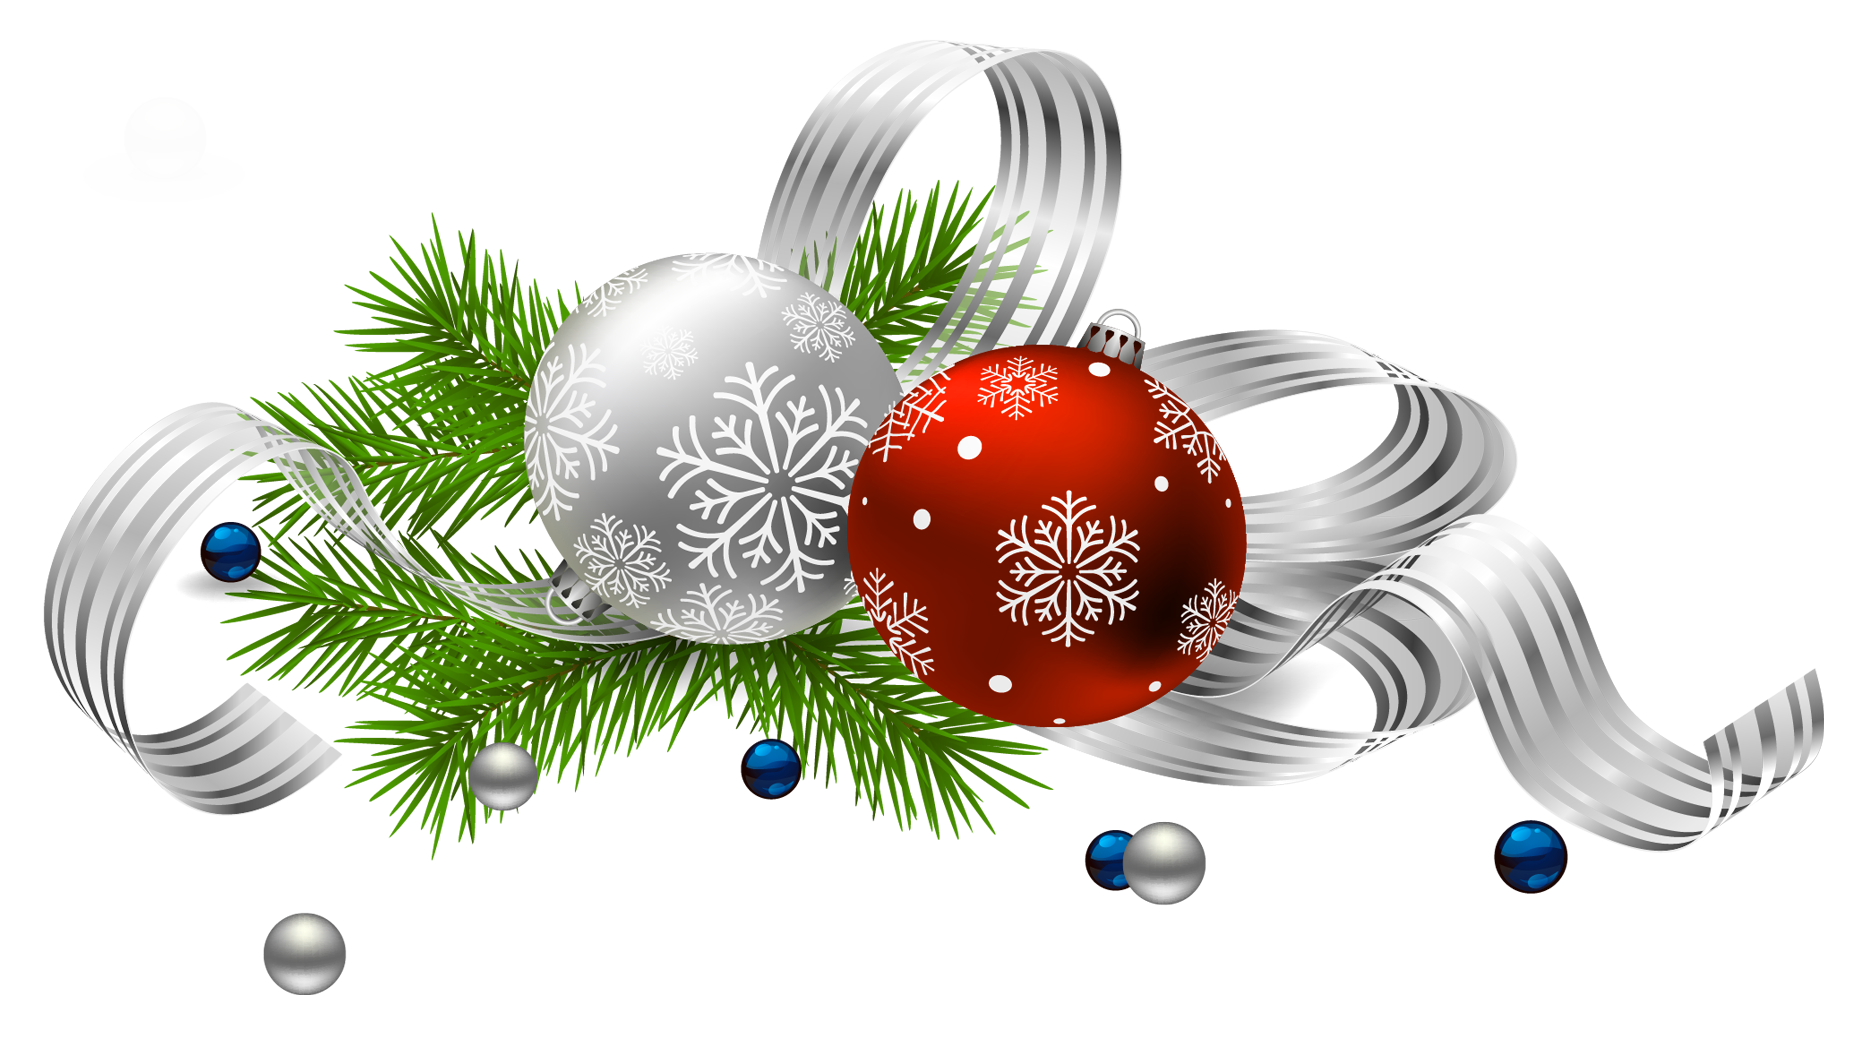 Christmas Illustrations Png.Christmas Decoration Png 99909 Png Images Pngio